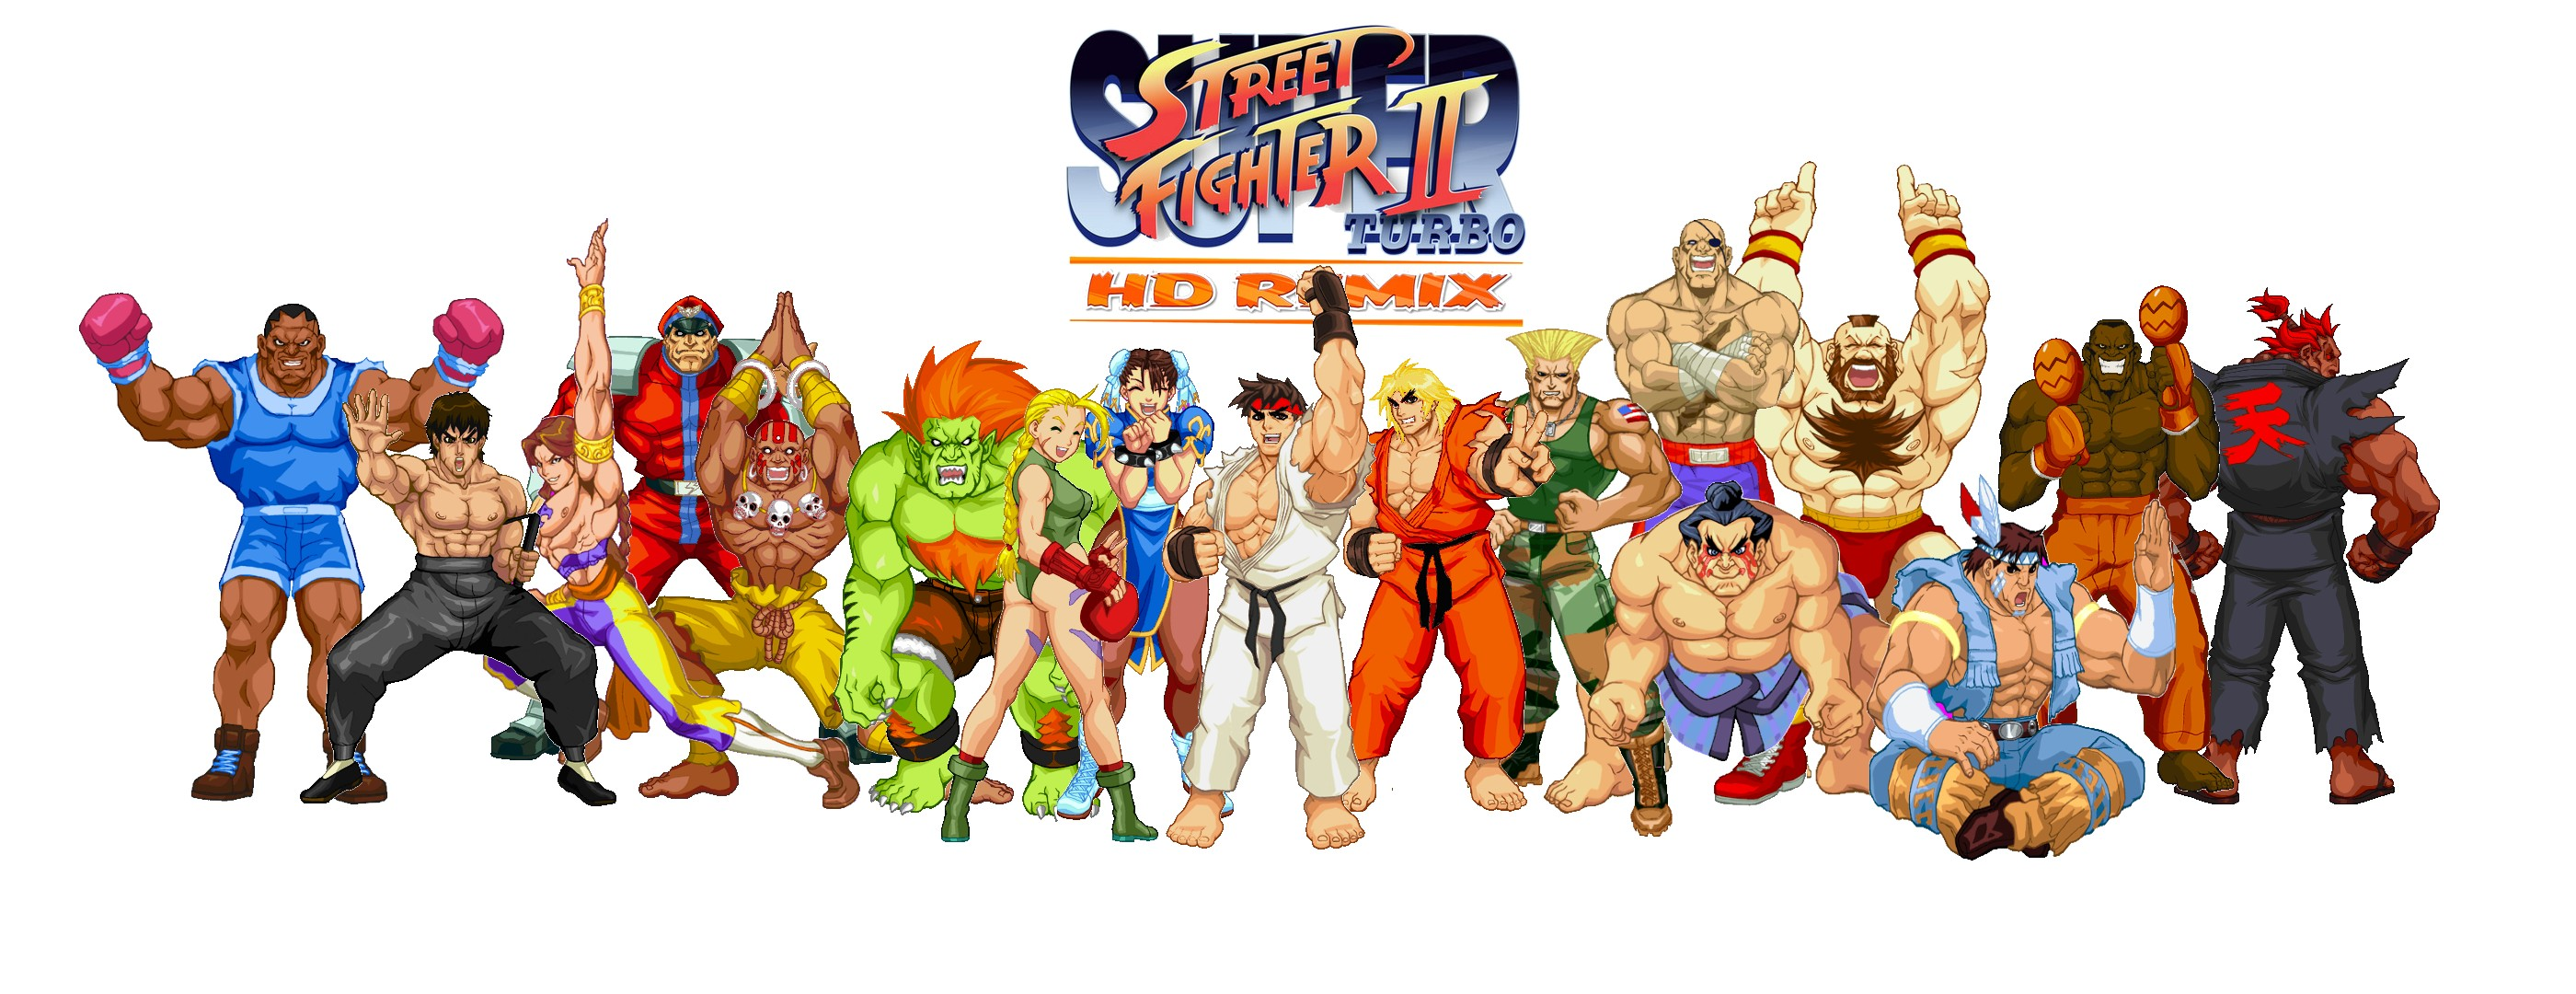 Free download Super Street Fighter 2 turbo hd remix by